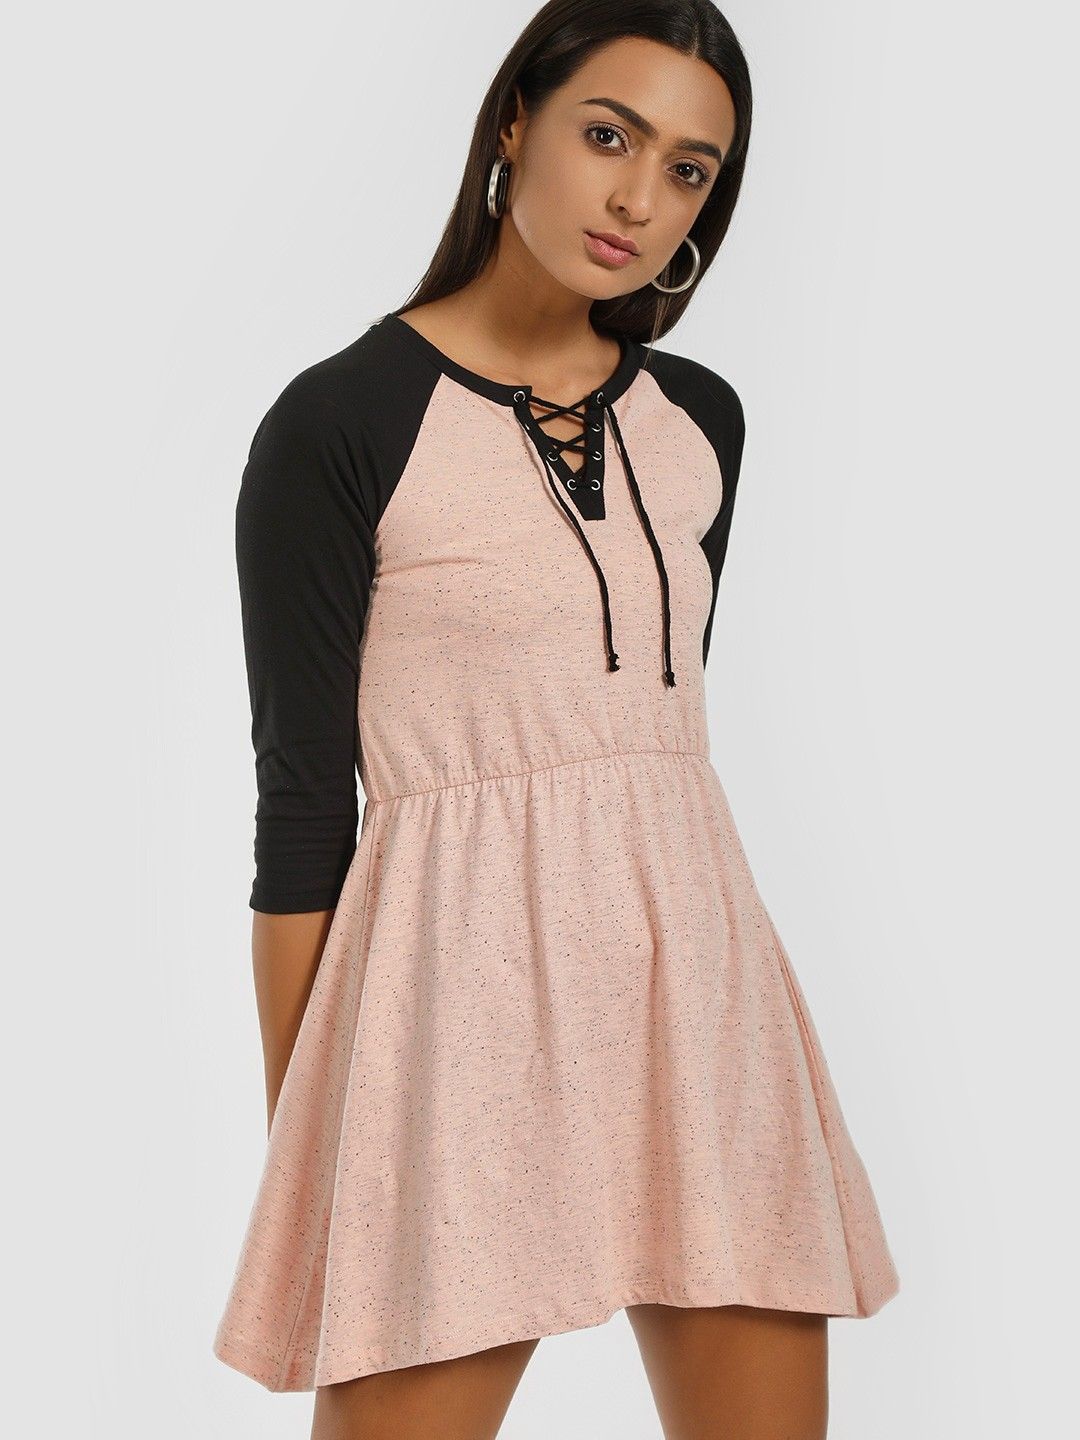 Kultprit Pink Raglan Sleeve Lace-Up Shift Dress 1